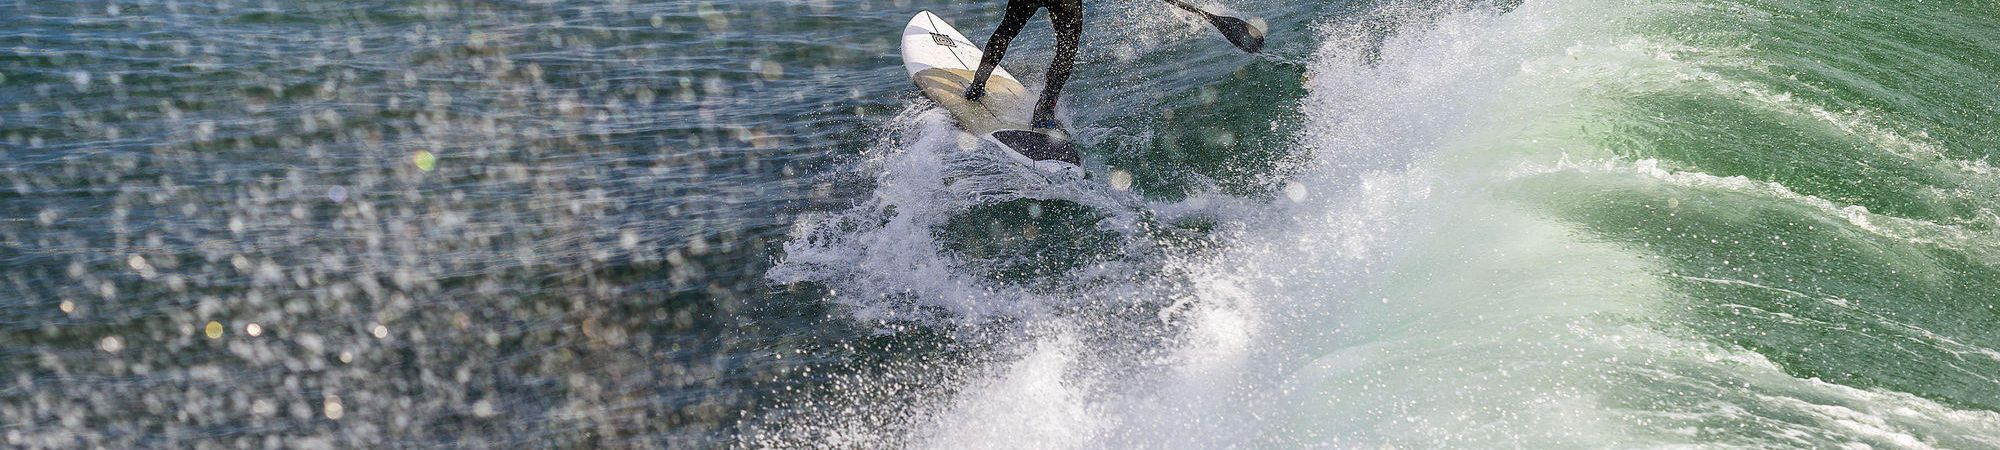 Stand up paddle - Porthleven Holiday Cottages